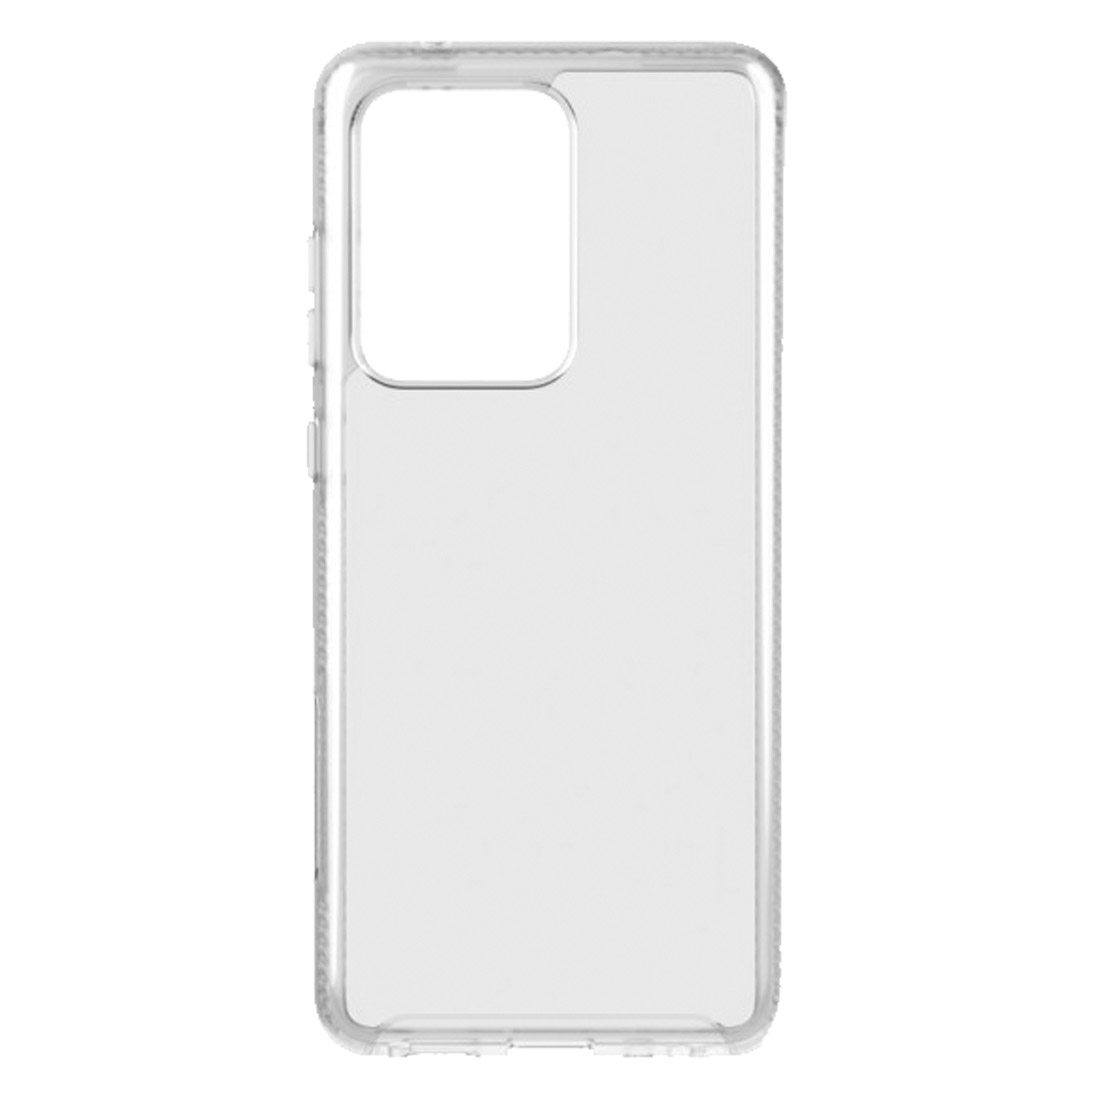 Tech21 Pure Clear Case for Samsung Galaxy S20 Ultra T21-7704 - Clear